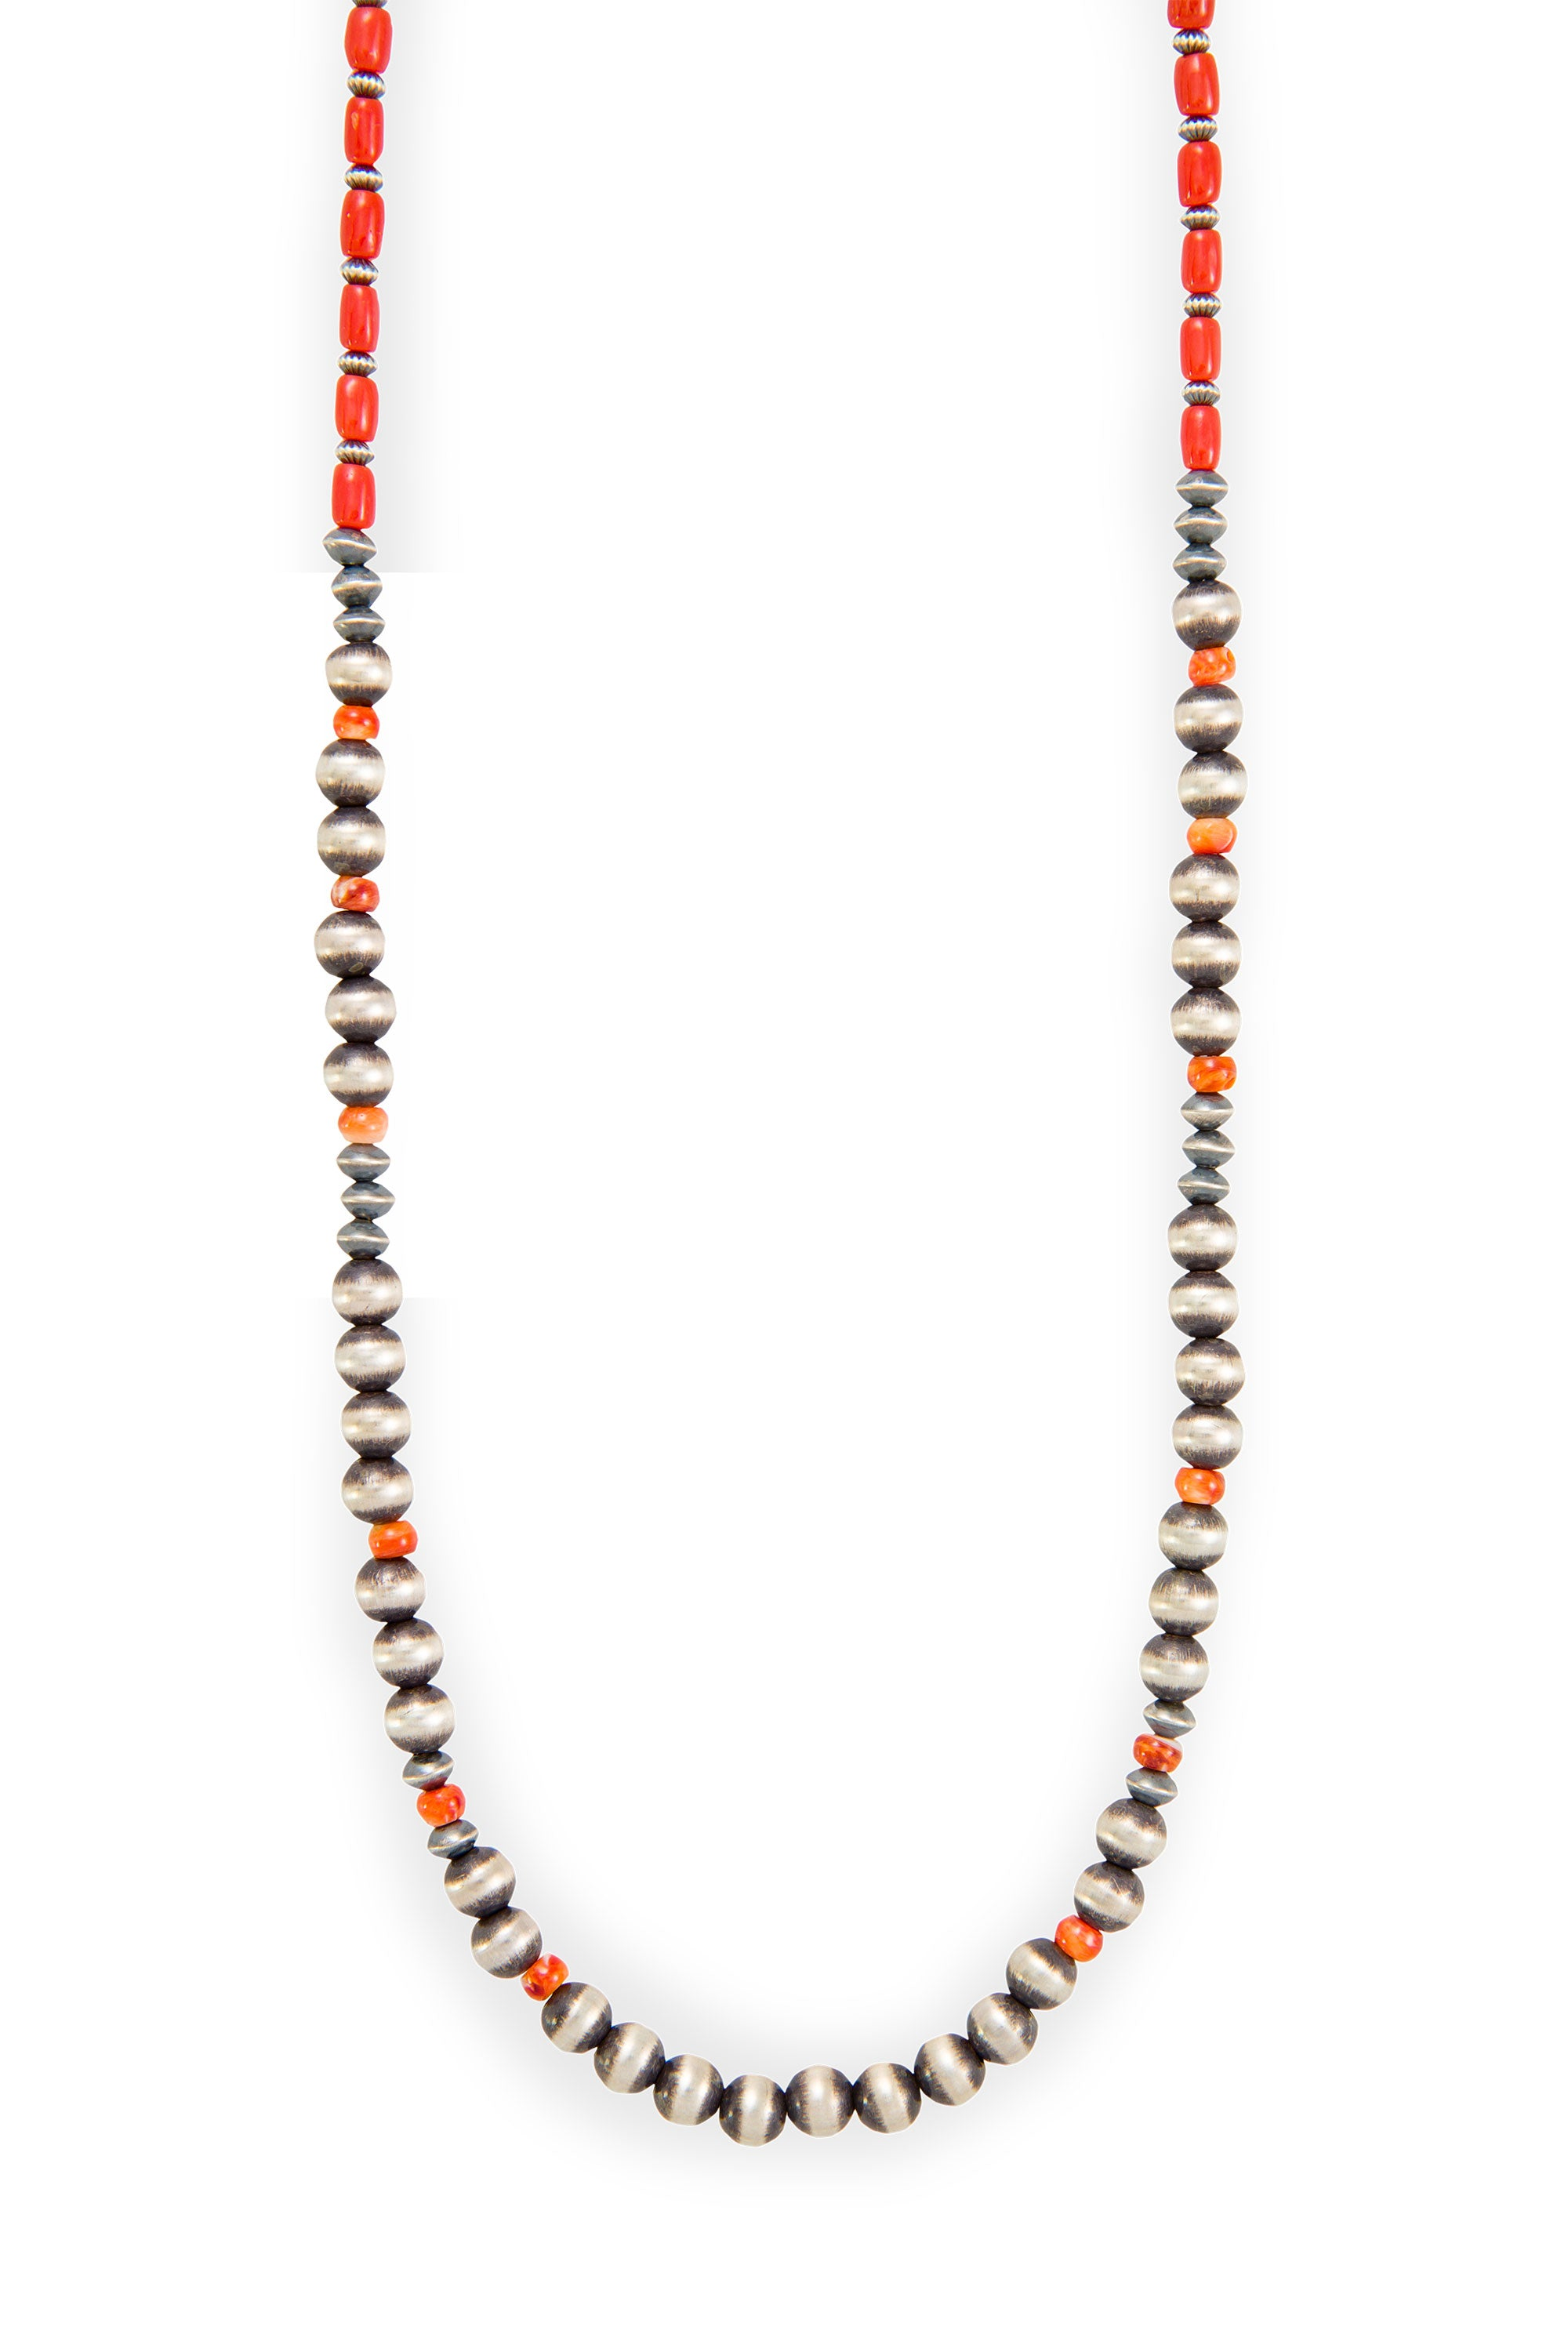 Necklace, Bead, Coral & Sterling Silver, Coral Pueblo